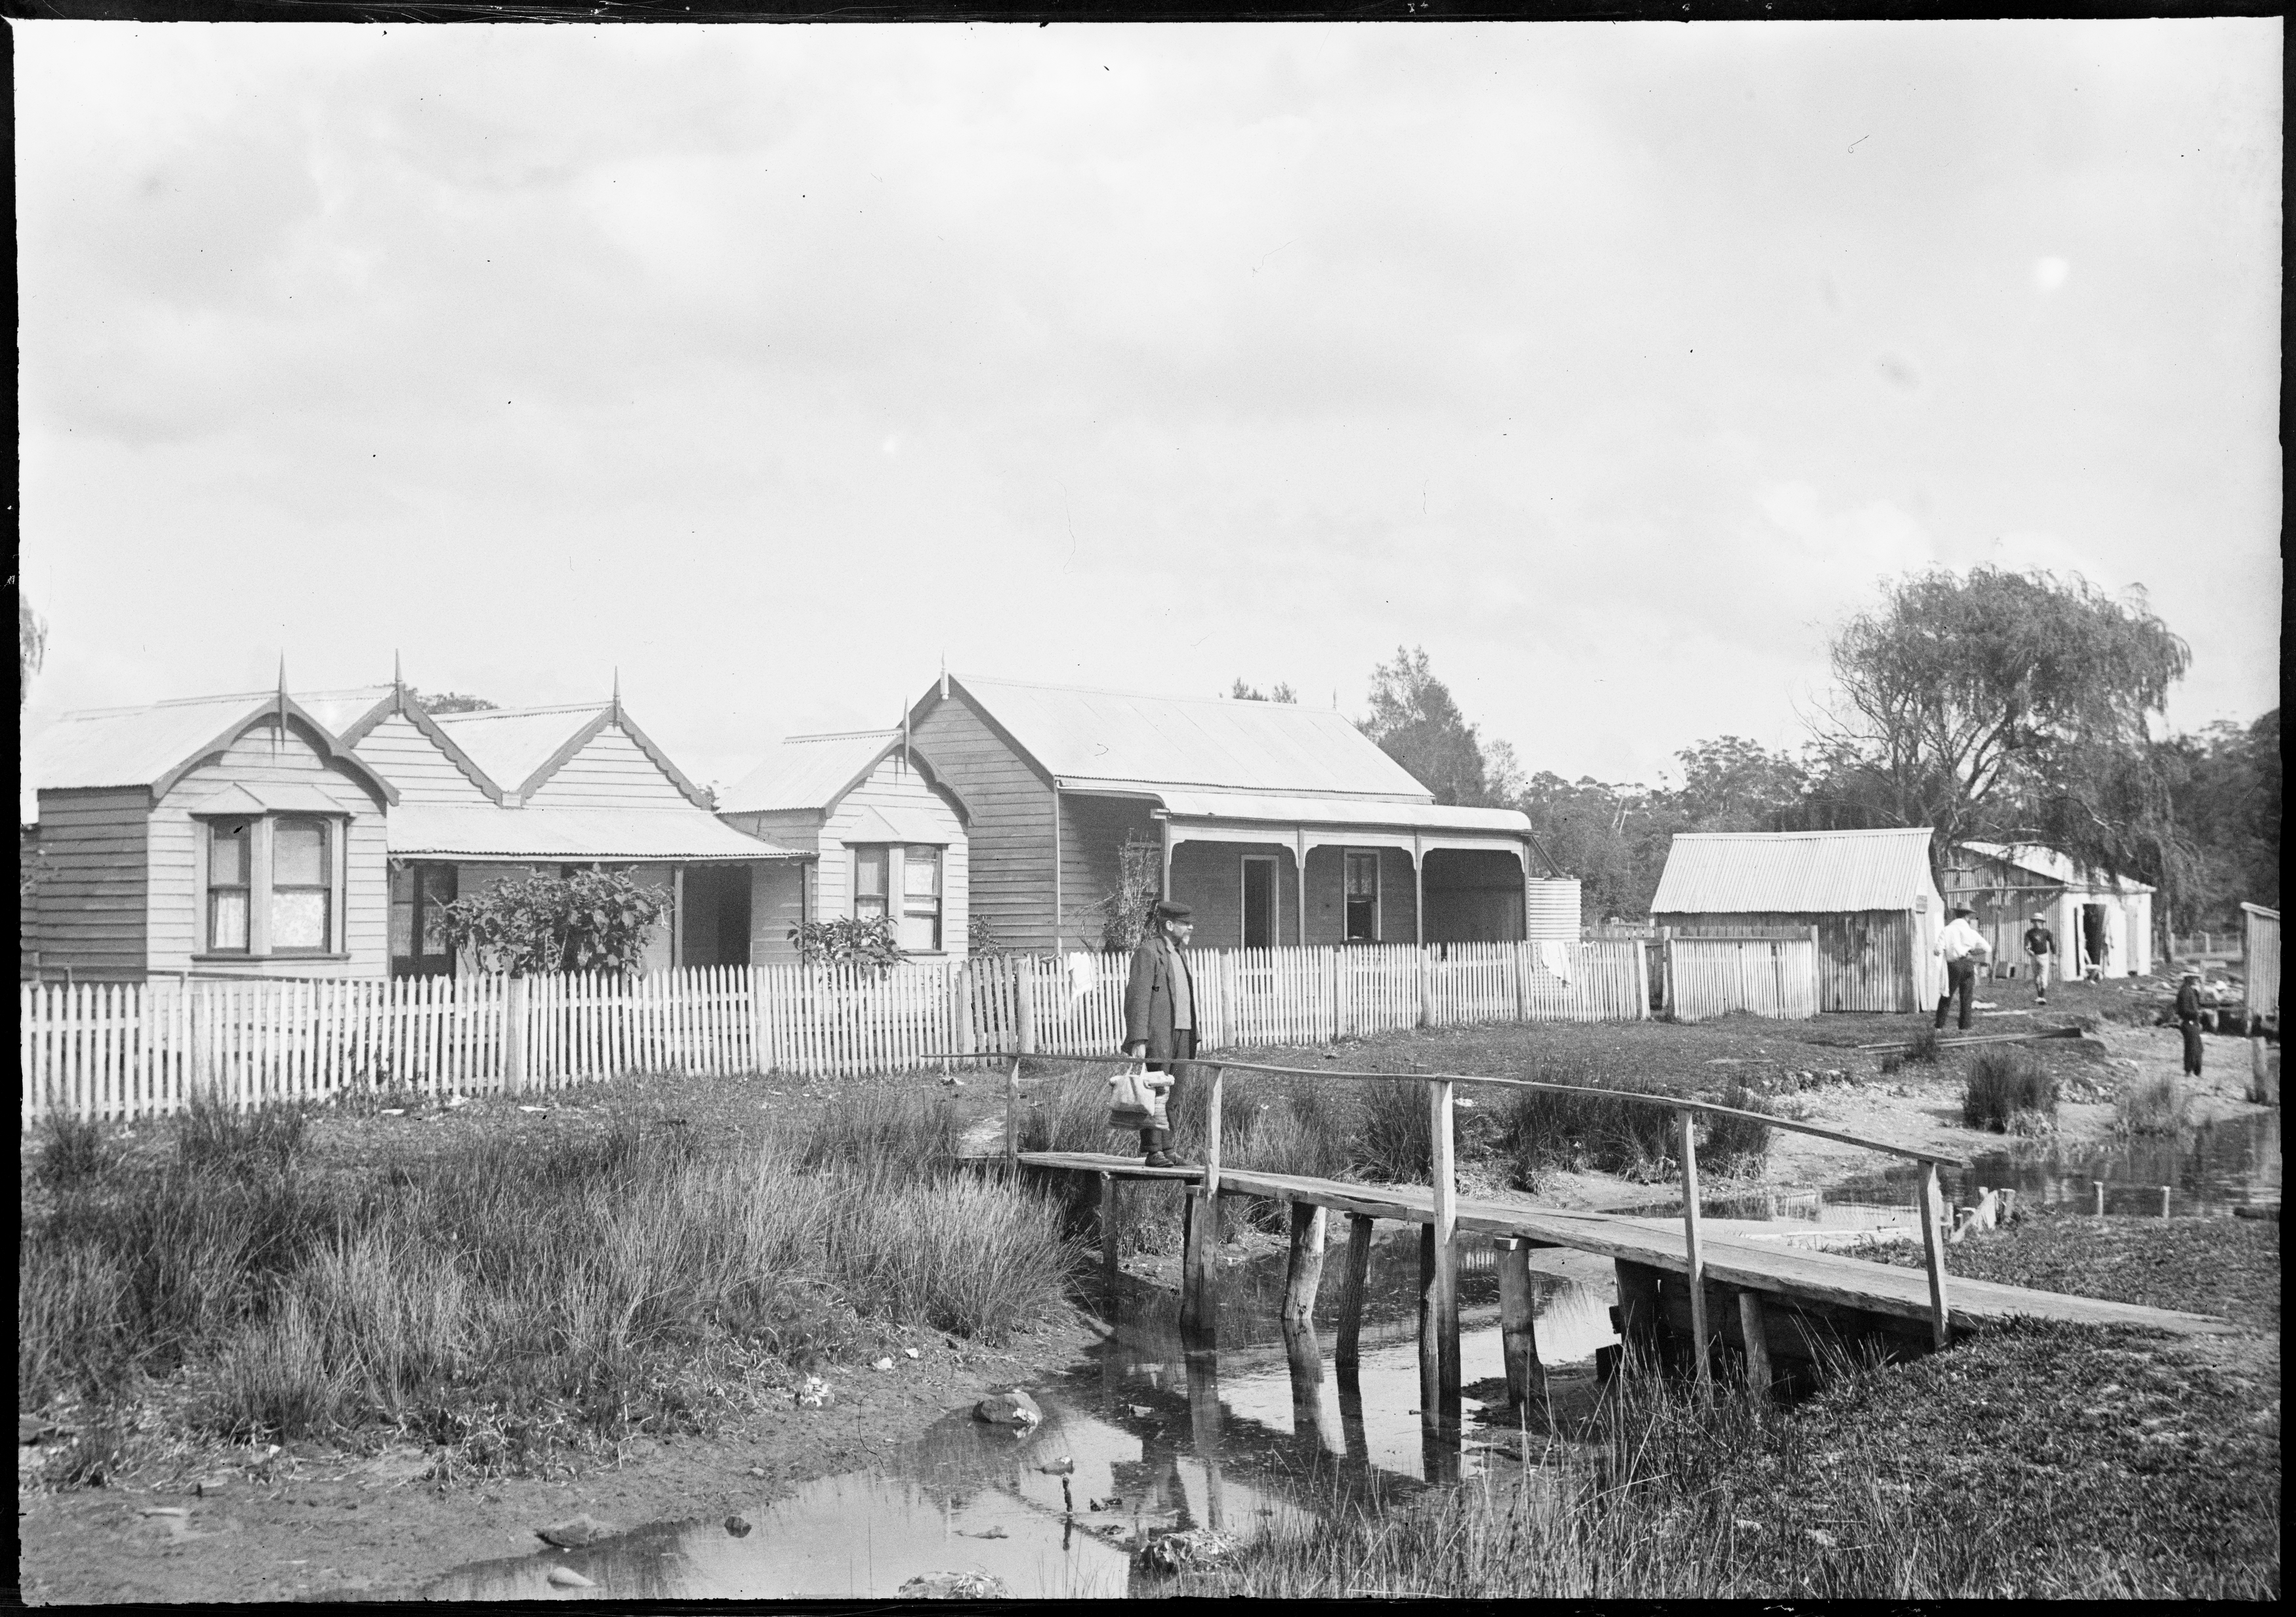 Glass negatives of the Woy Woy area, ca 1890-1910, by William Joseph Macpherson